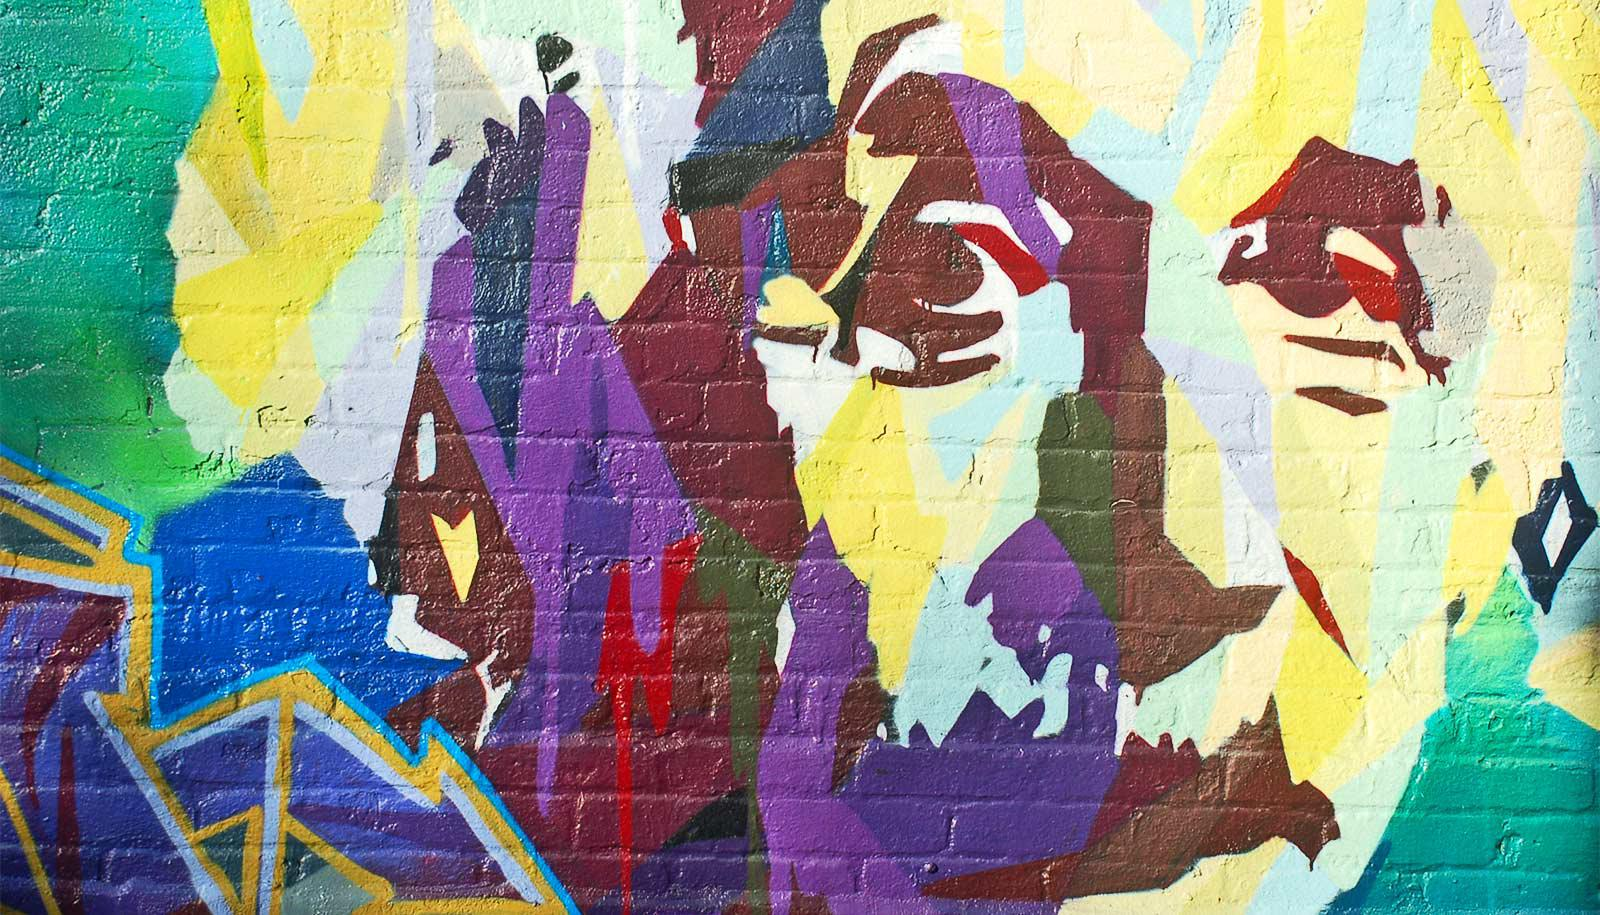 A colorful mural of Albert Einstein's face